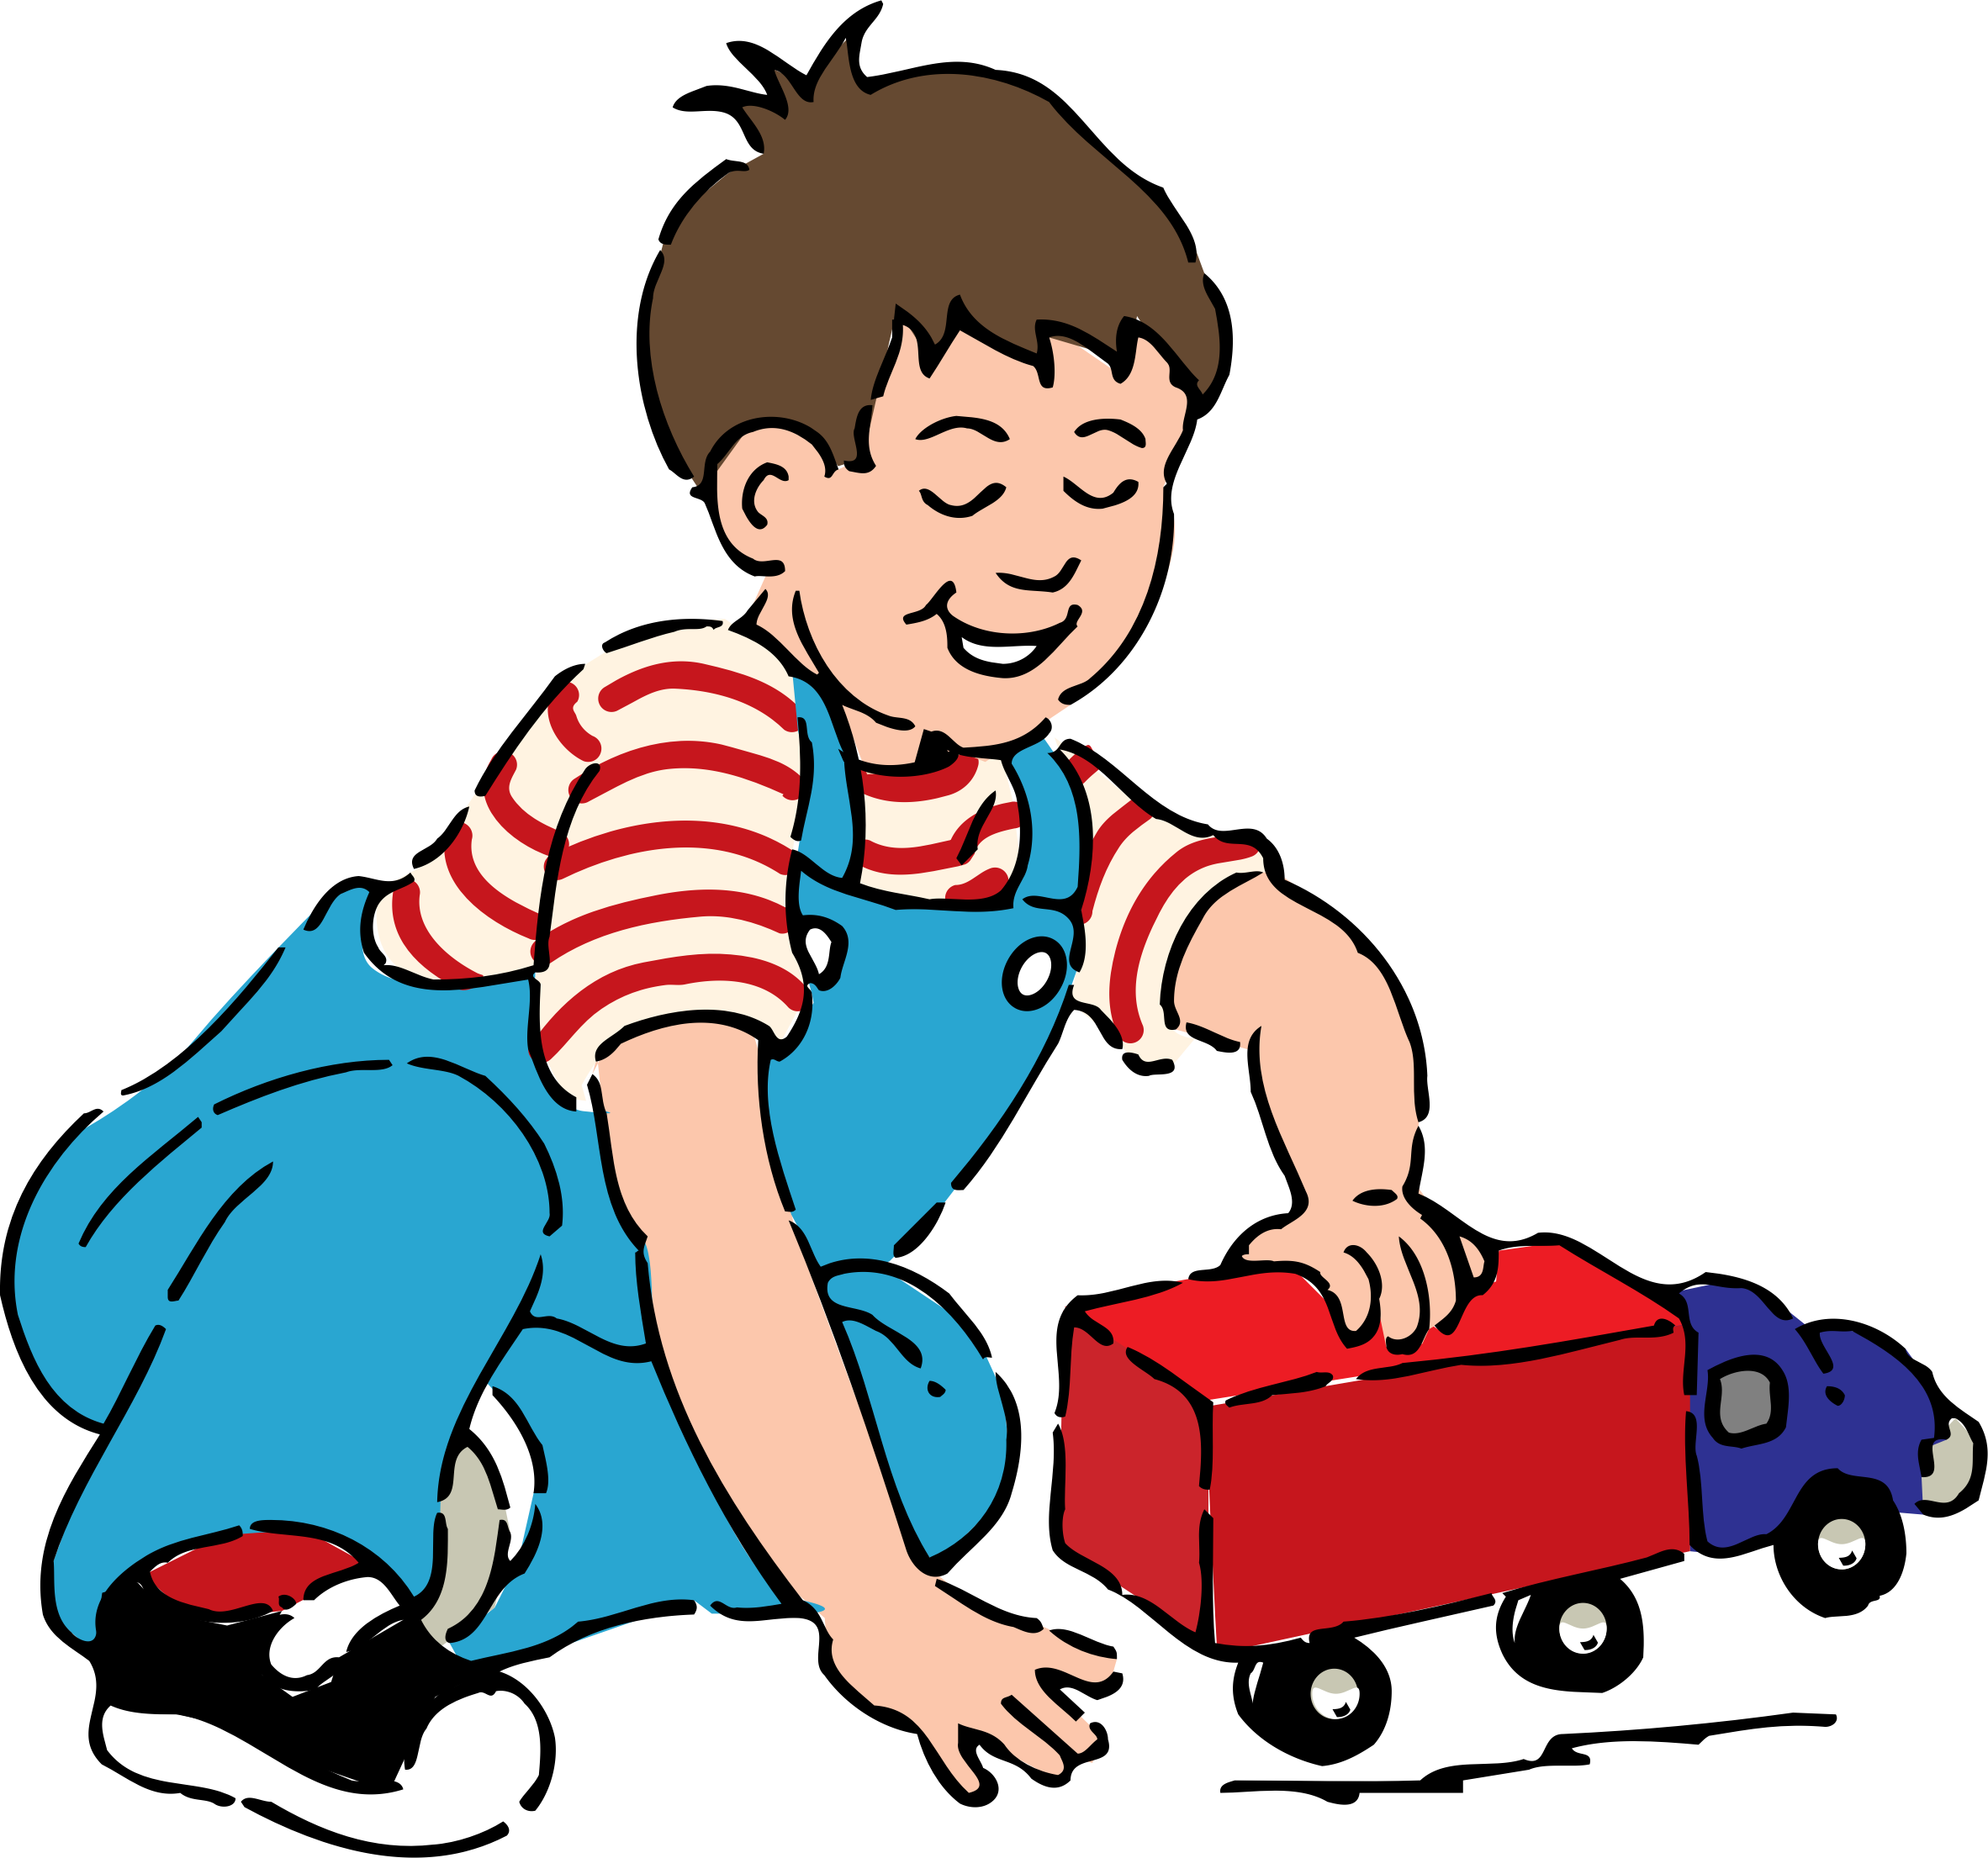 svg transparent download Kids playing together clipart. Boy with toy truck.